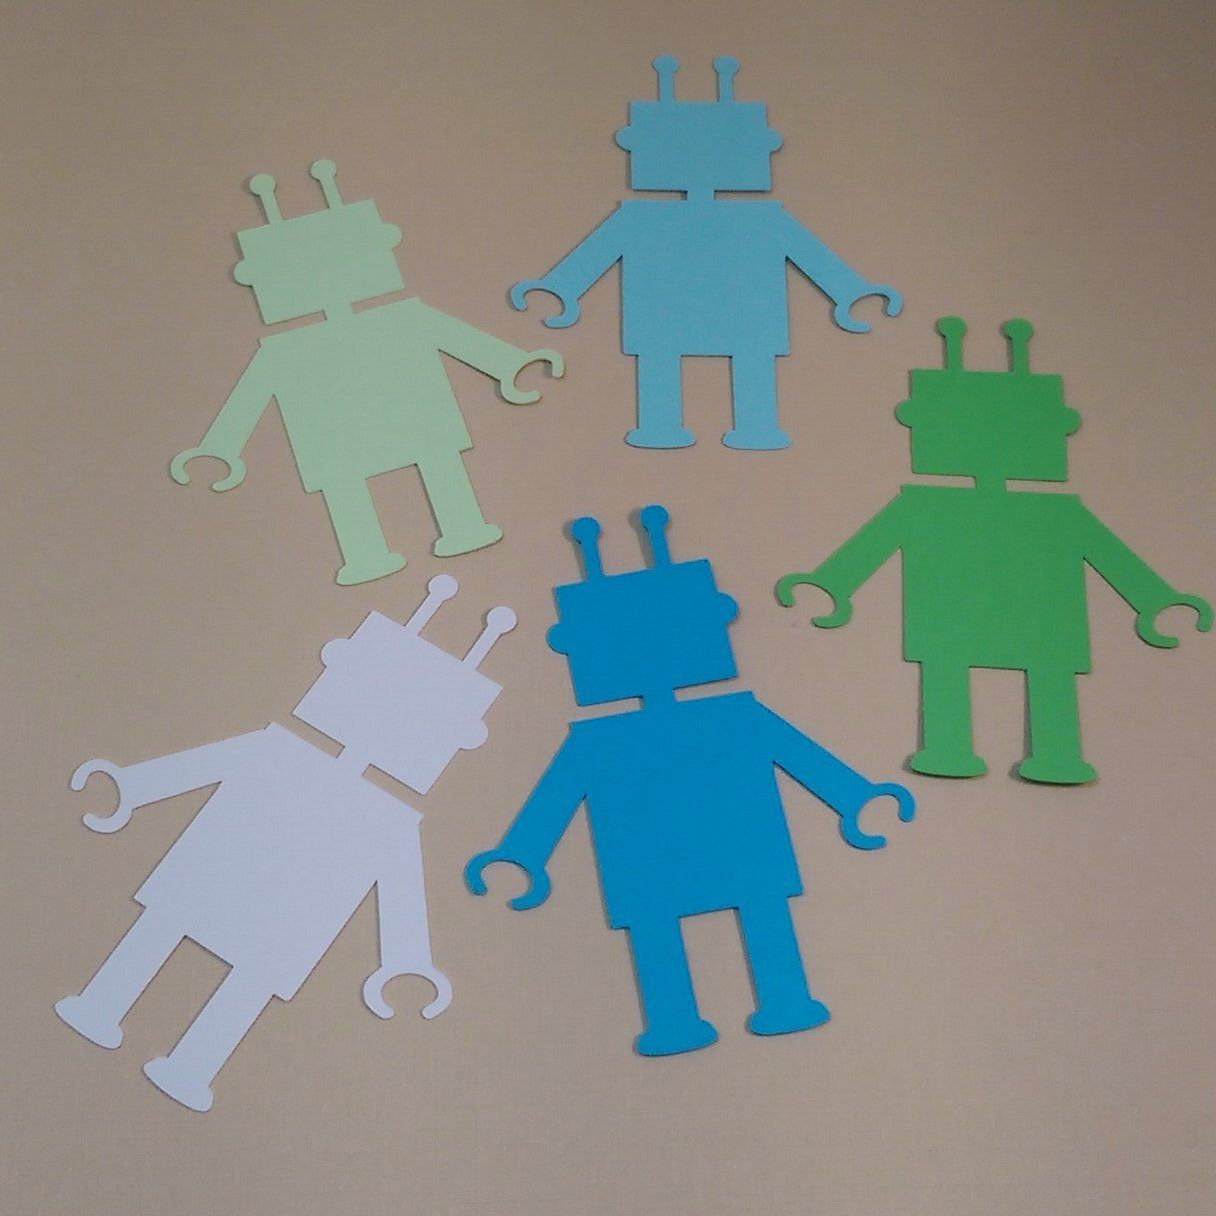 40 Robots (3 inches tall), Scrapbooking, Card Making, Create Banners, Enhance Gift Wrapping, Birthday Party Decoration